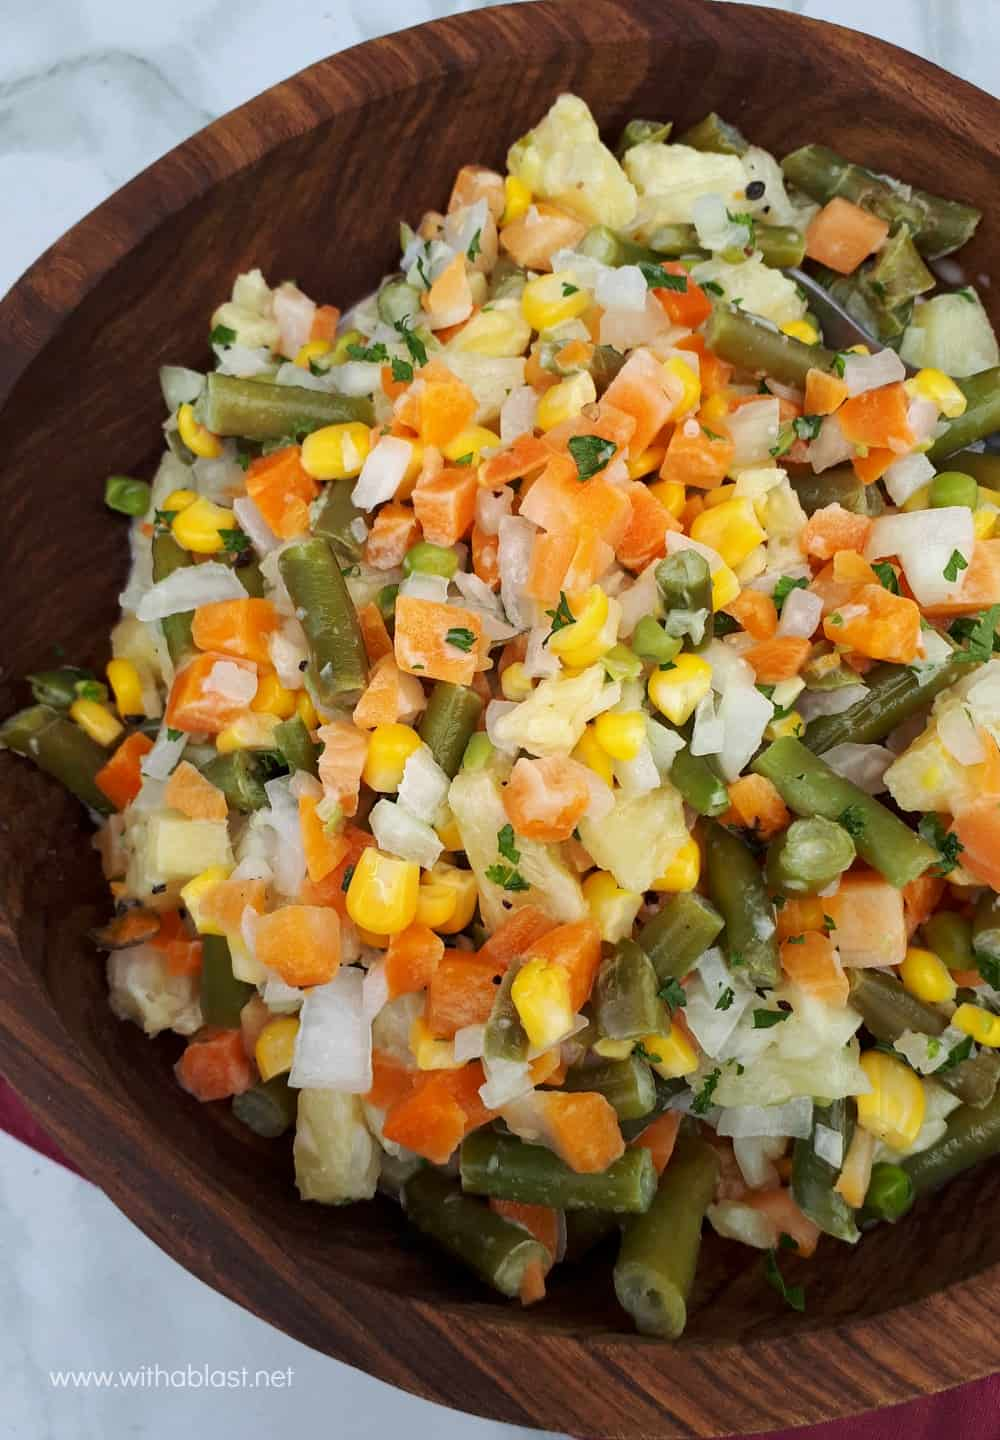 Tropical Vegetable Salad is loaded with vegetables and the added Pineapple makes the salad a hit, especially with kids - savory-sweet crunchy delicious!